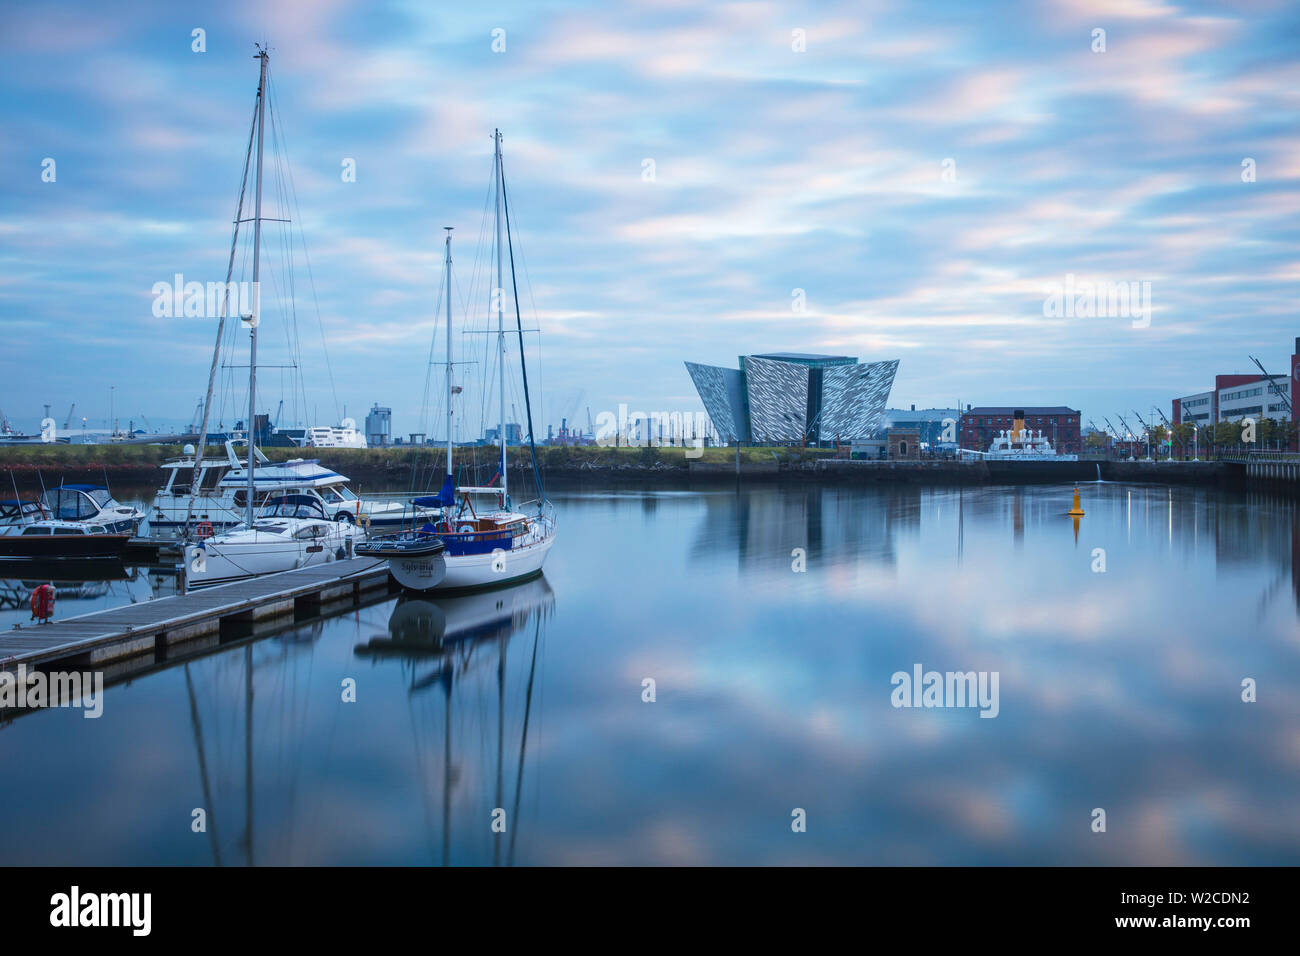 United Kingdom, Northern Ireland, Belfast, View of the Titanic Belfast museum and The SS Nomadic - Stock Image